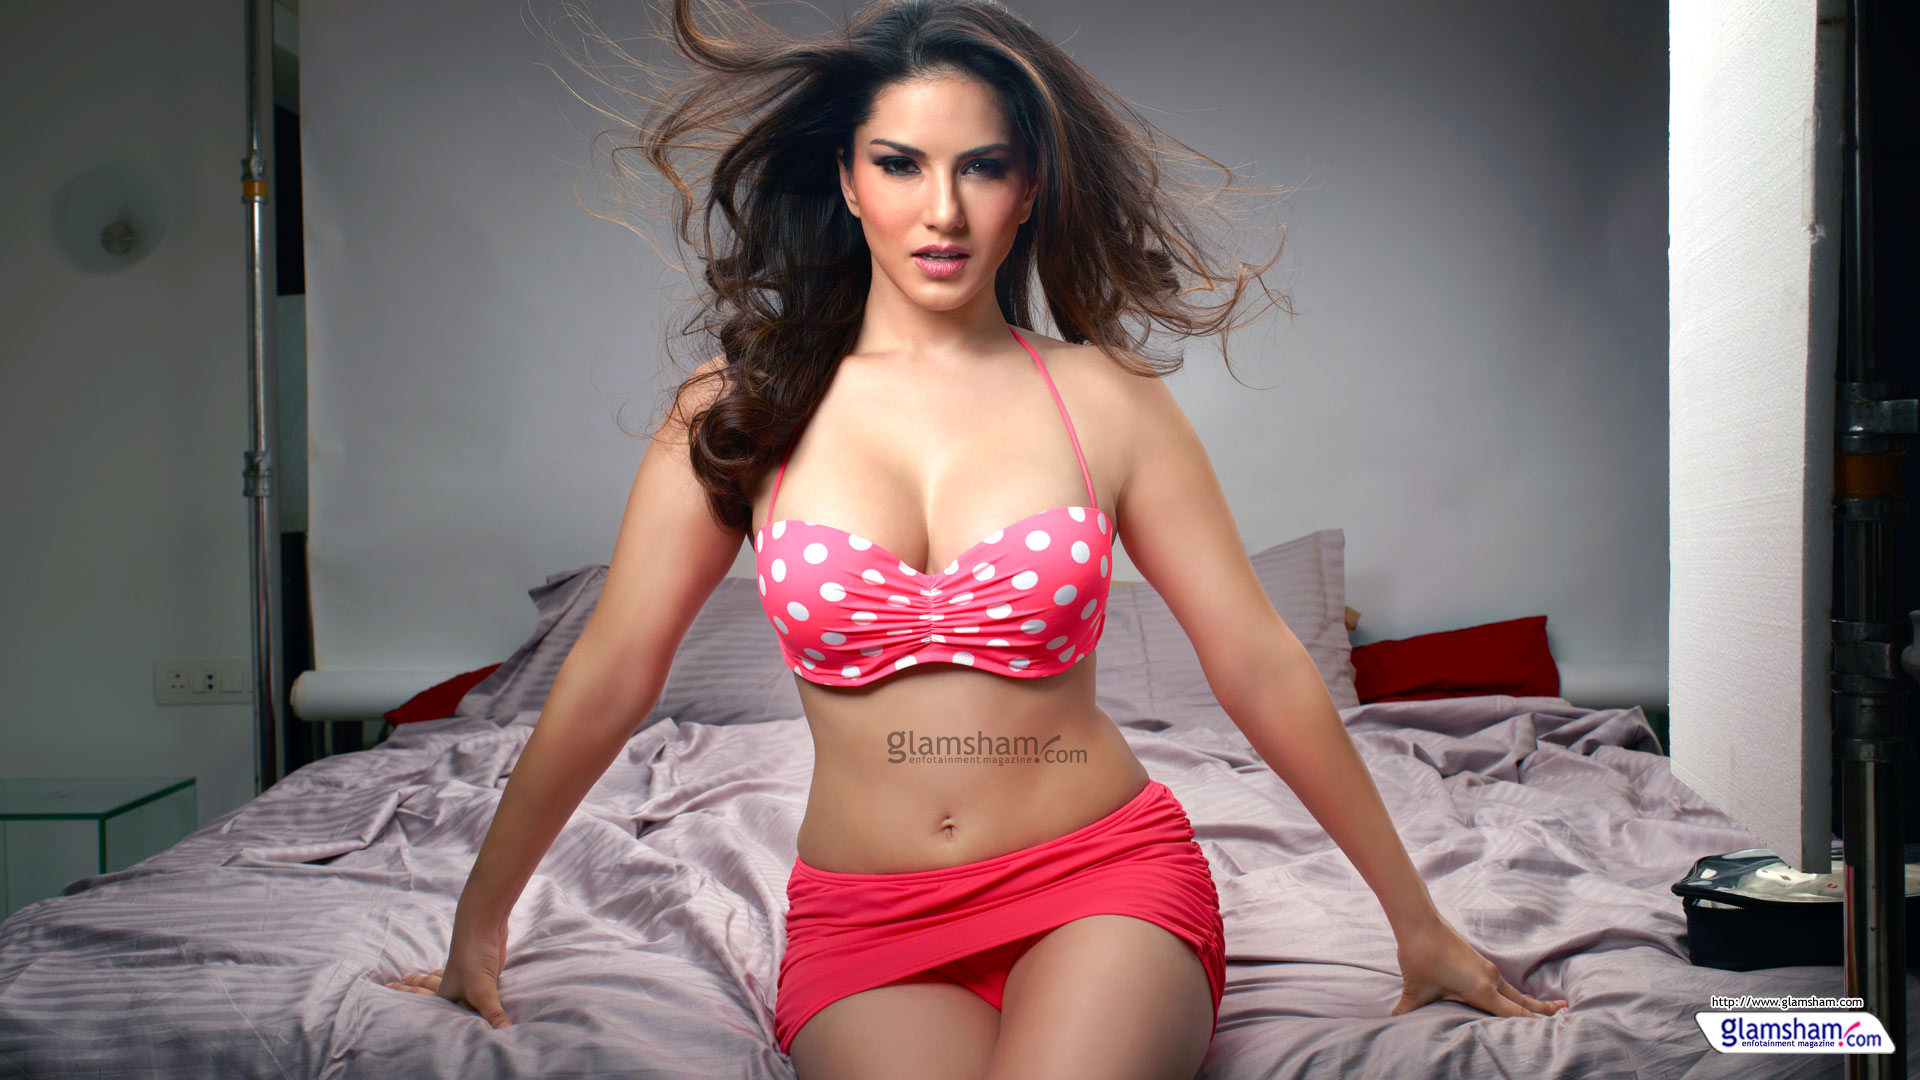 Sunny Leone Hd Wallpapers 1920x1080 Page 1